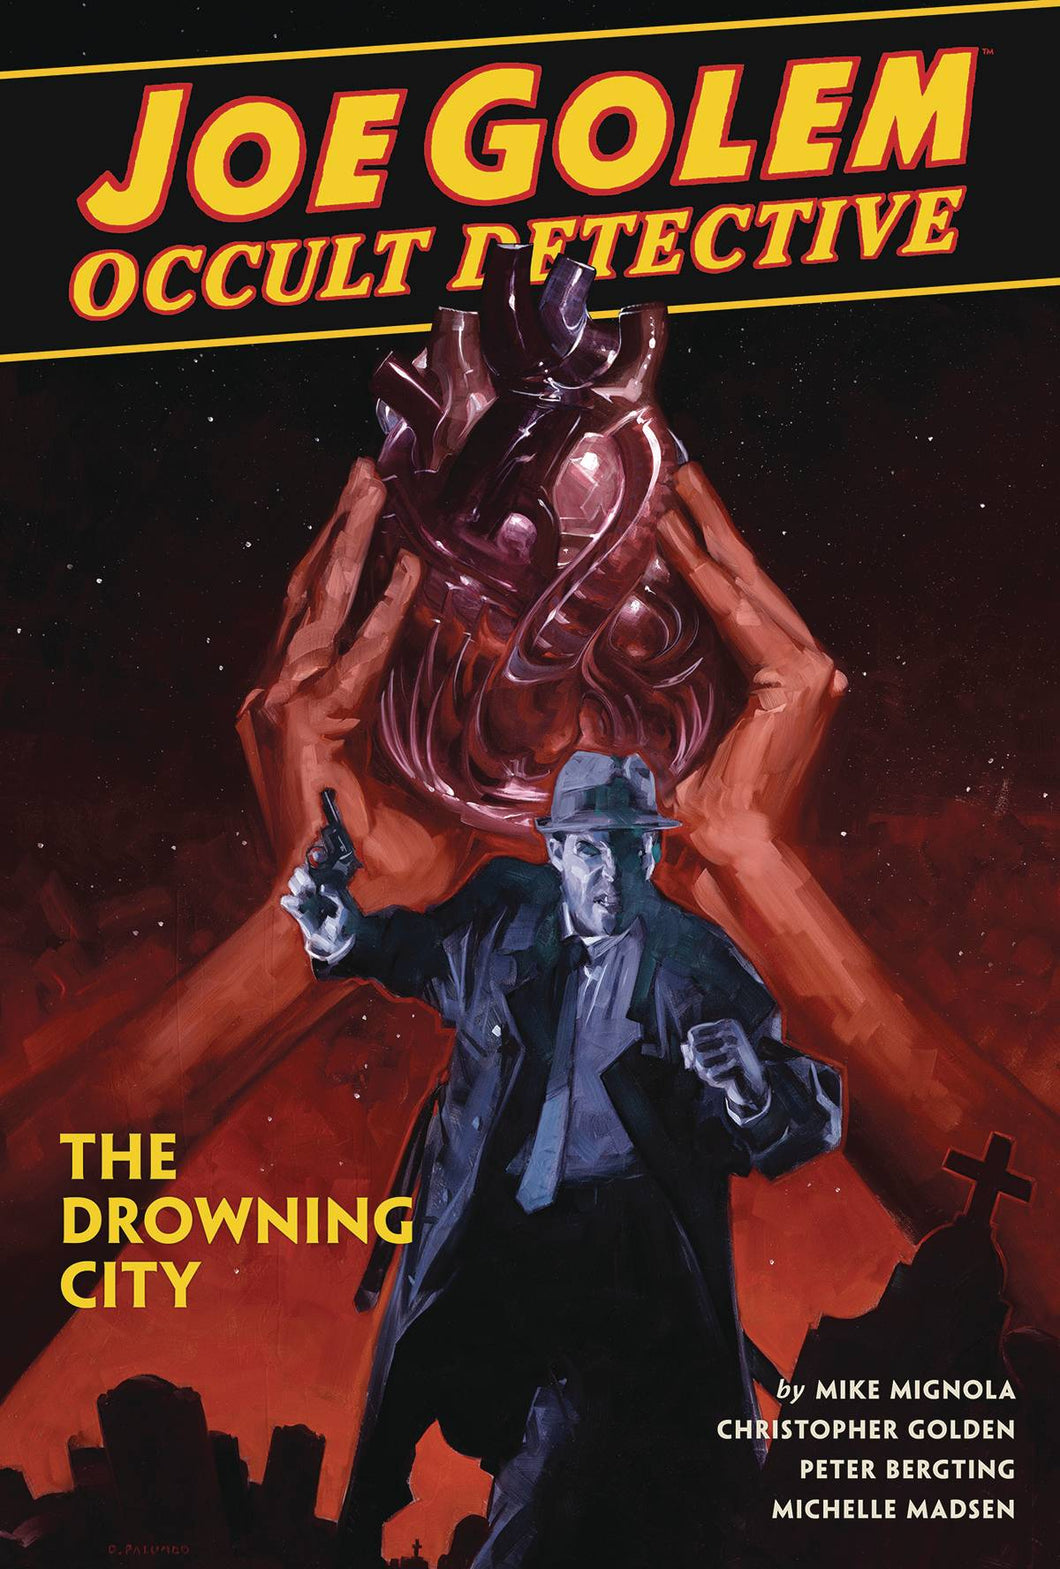 Joe Golem Occult Detective Hc Vol 03 Drowning City